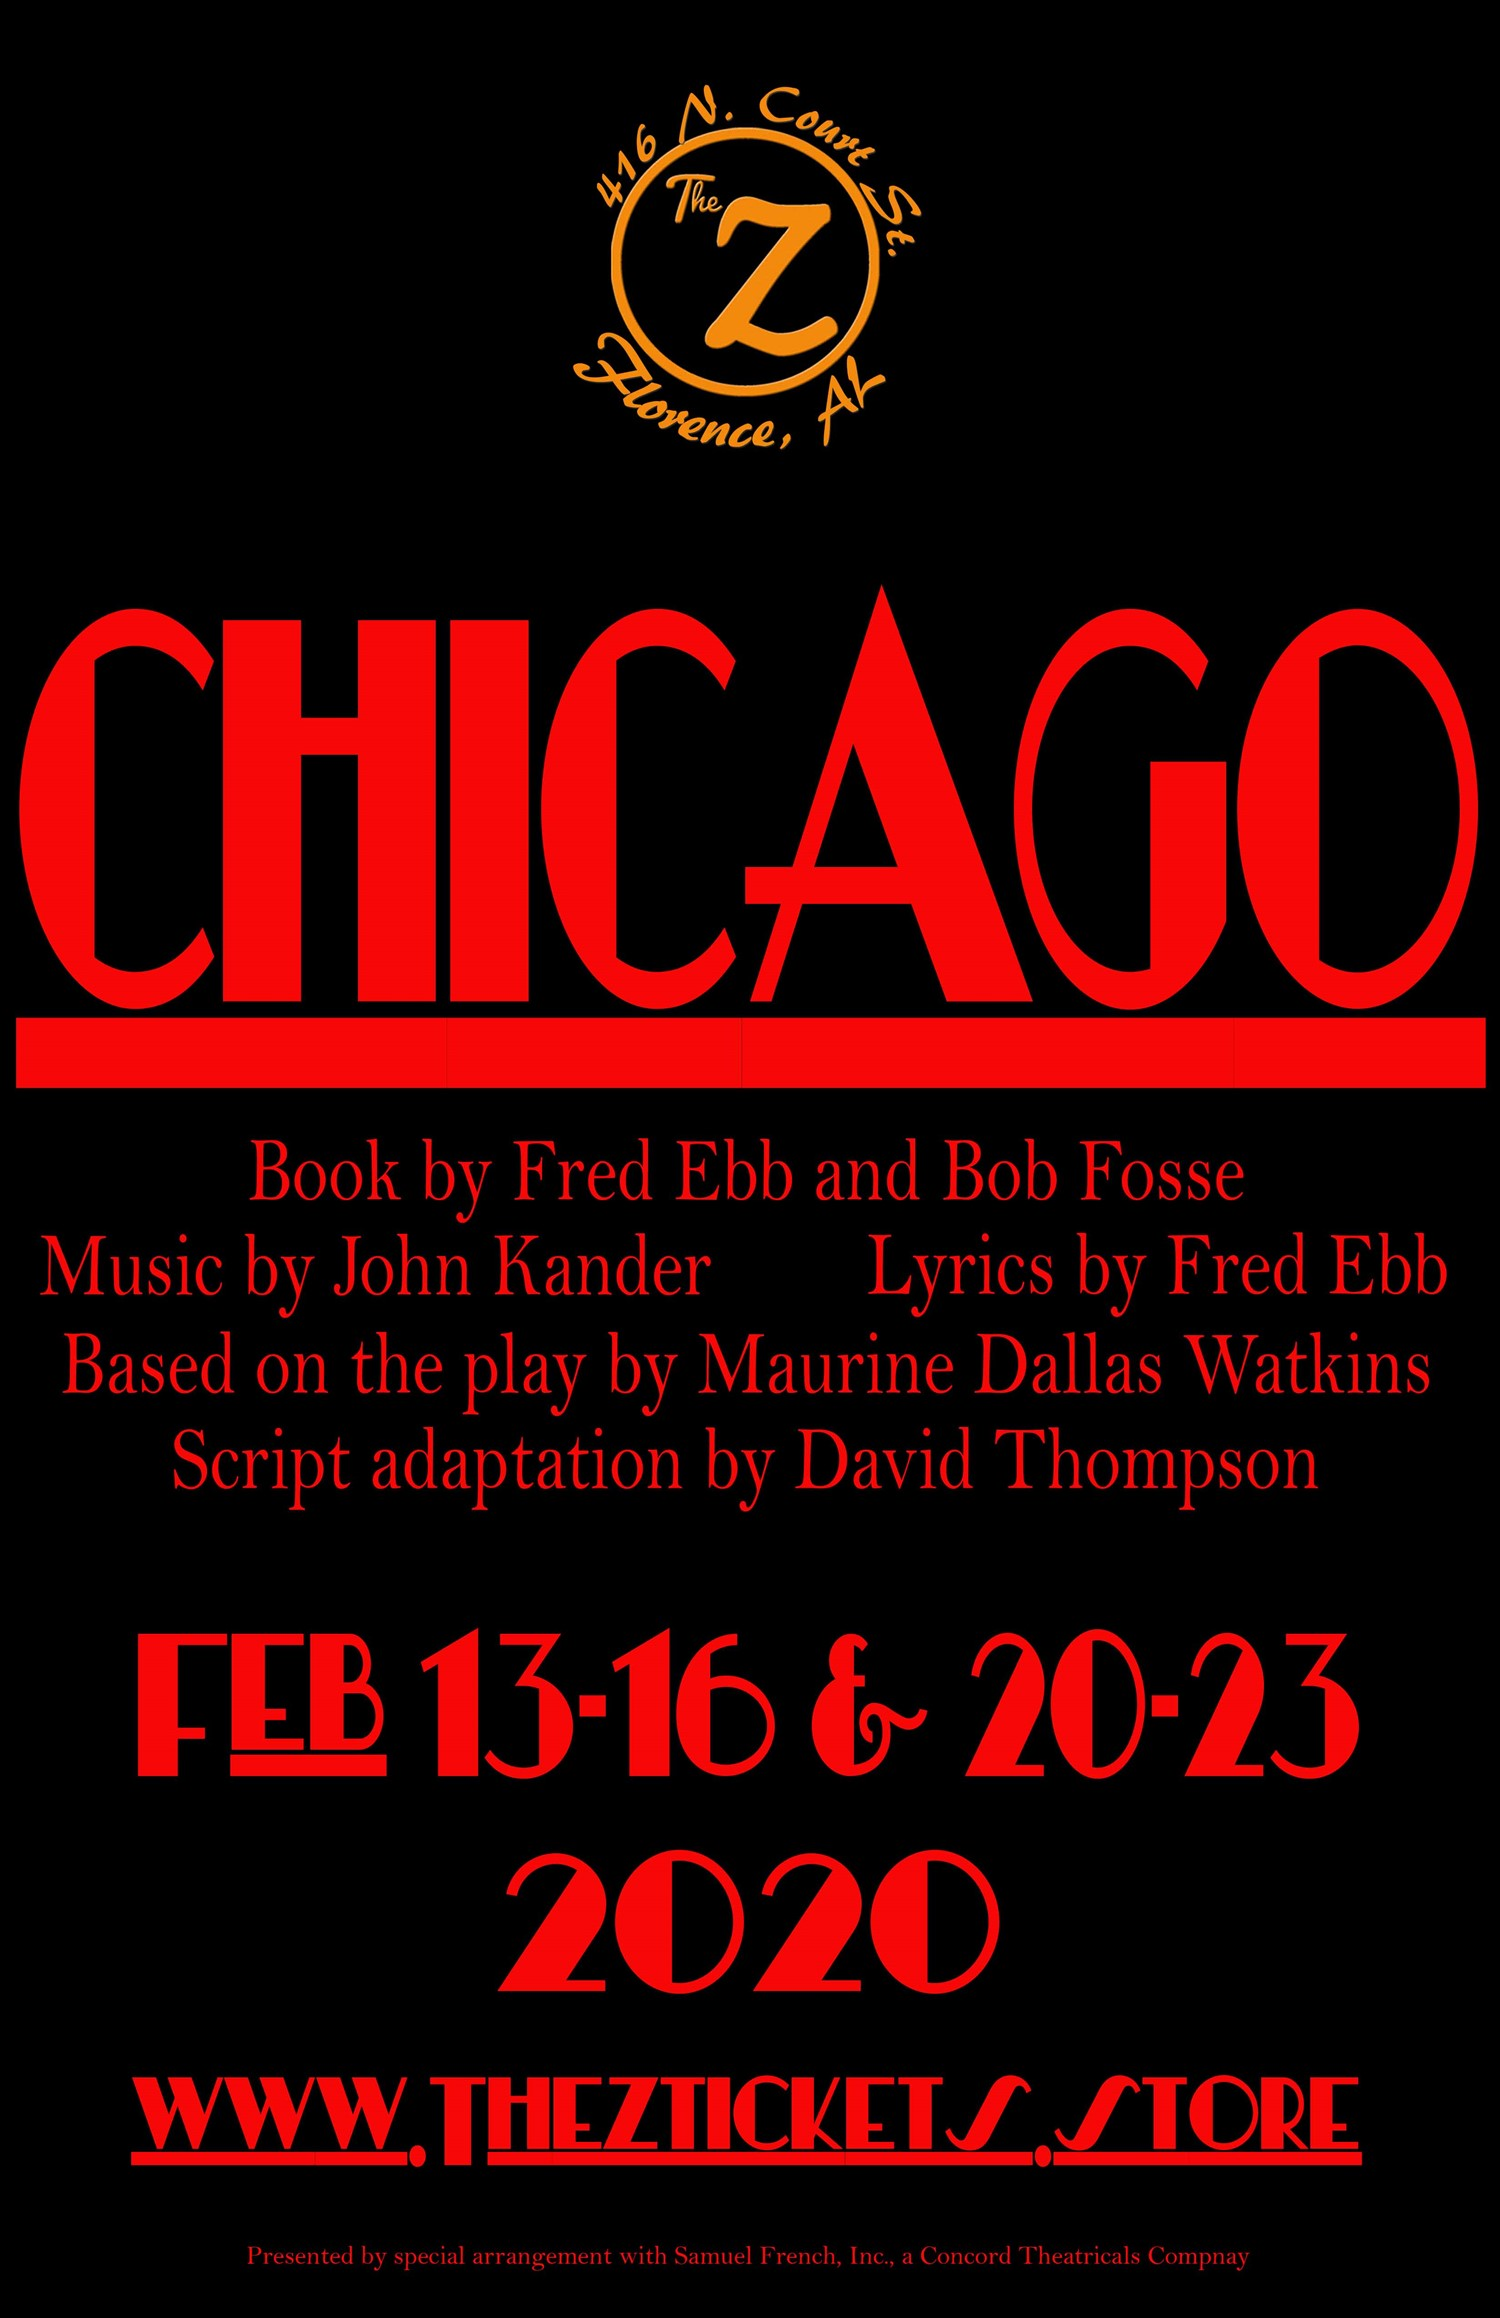 Chicago  on Feb 25, 00:00@The Z - Pick a seat, Buy tickets and Get information on Historic Zodiac Playhouse